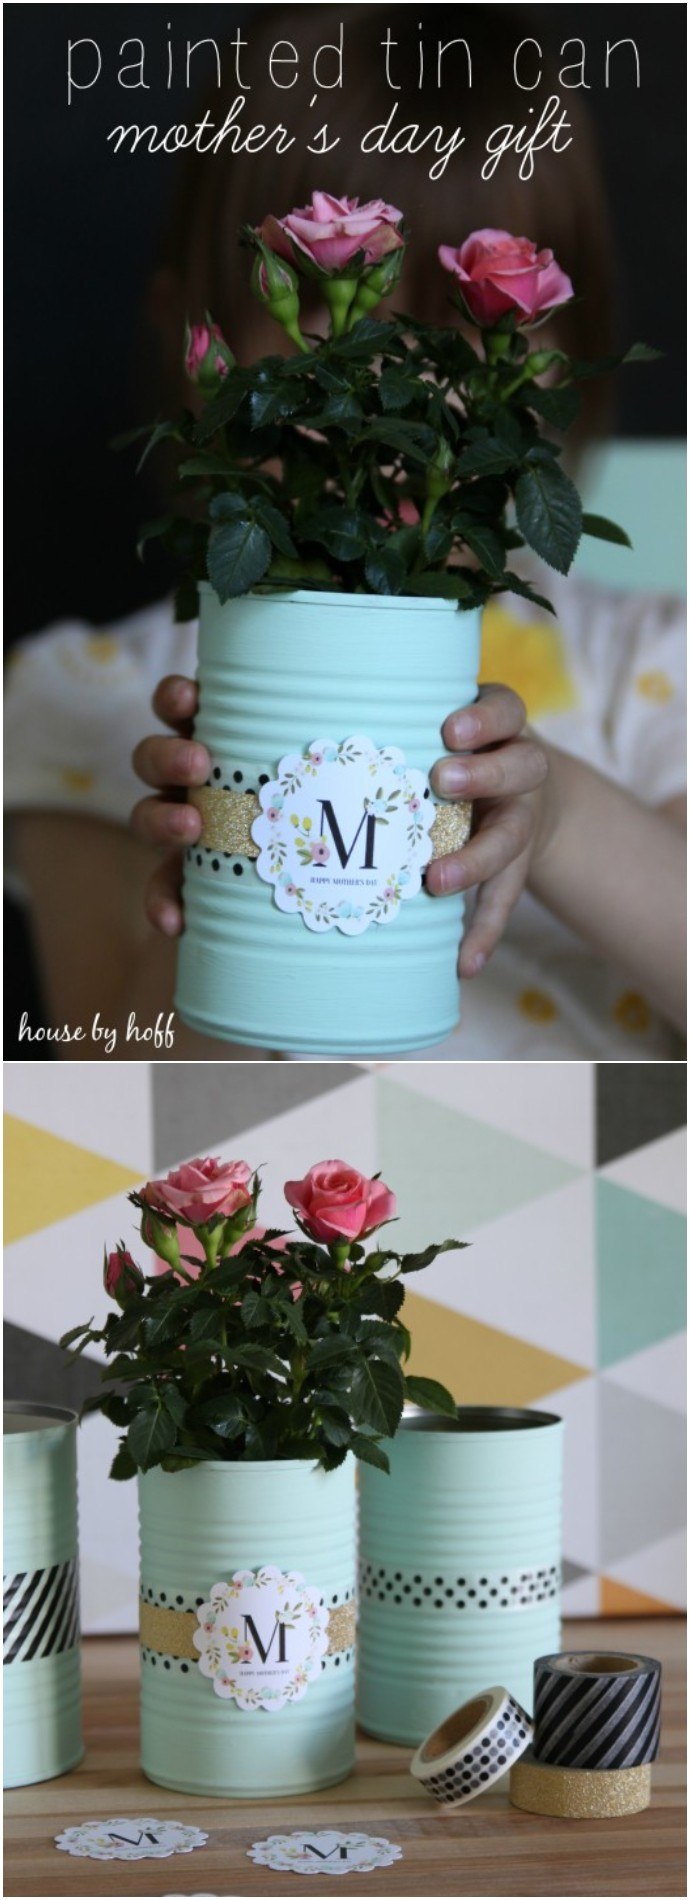 Painted Tin Cans A Mother's Day Gift Idea